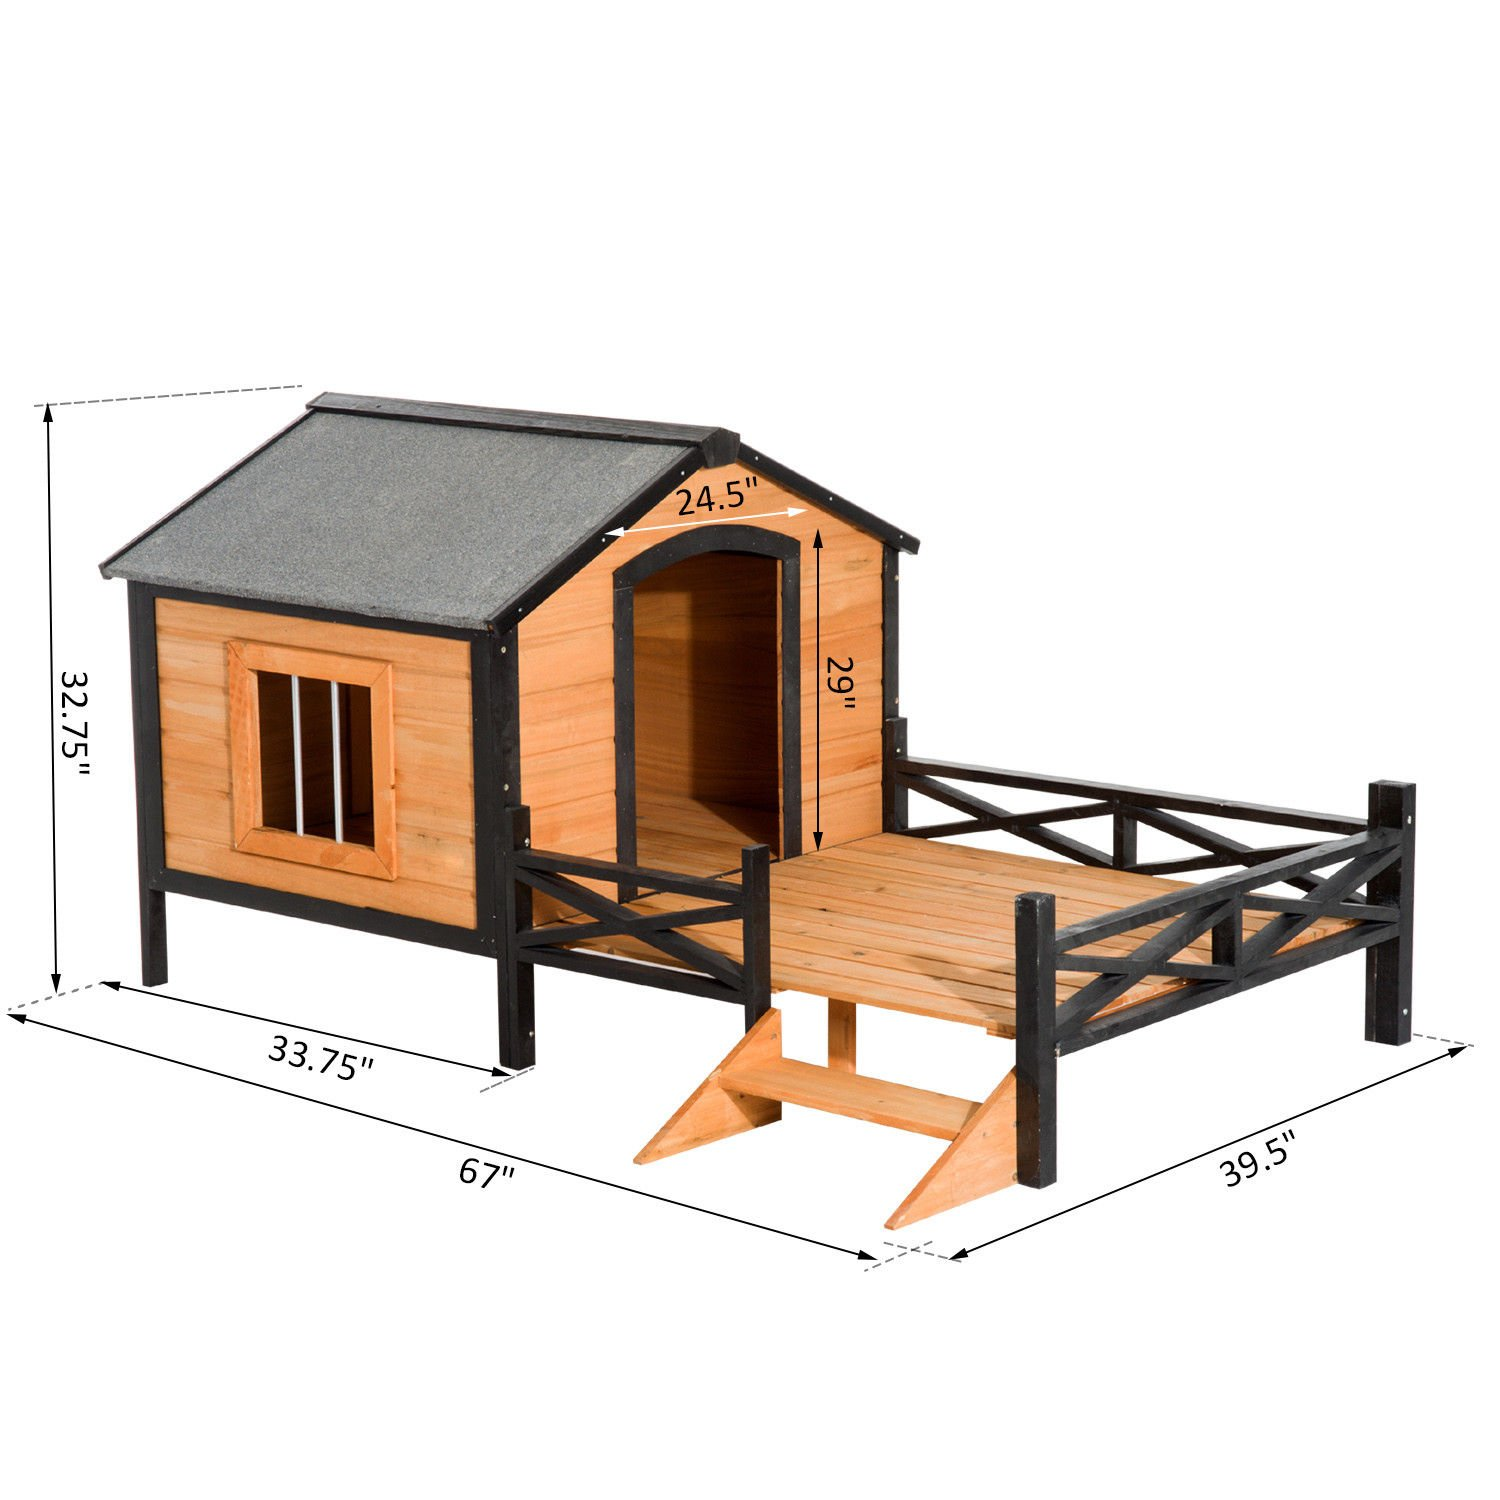 PawHut 67'' Large Wooden Cabin Style Elevated Outdoor Dog House with Porch by PawHut (Image #7)